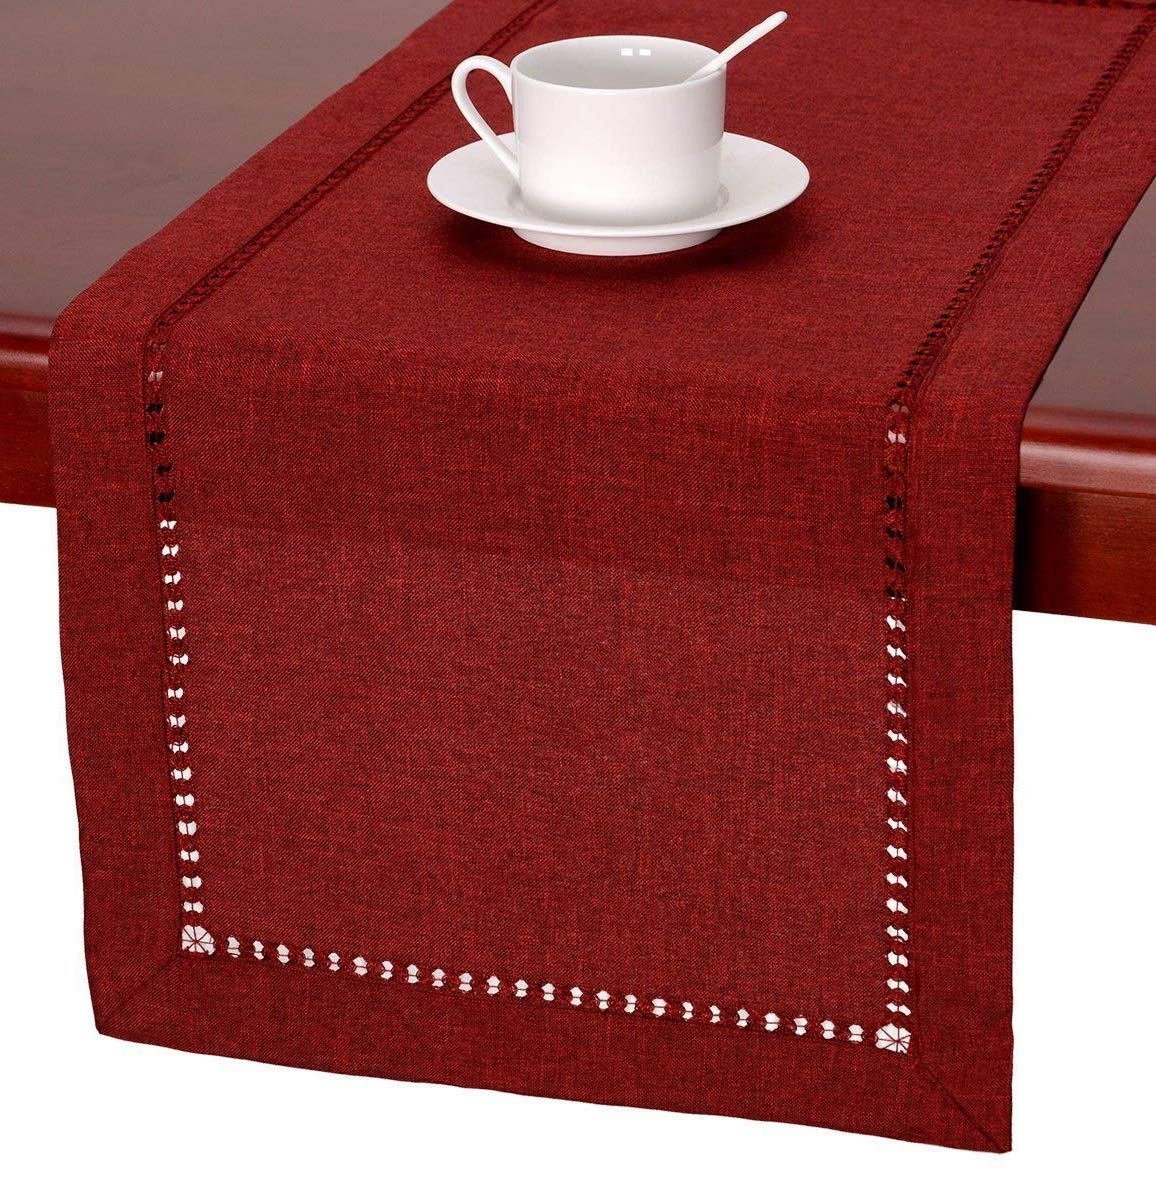 Handmade Hemstitched Polyester Rectangle Table Runners And Dresser Scarves, Cranberry 14x108 inch